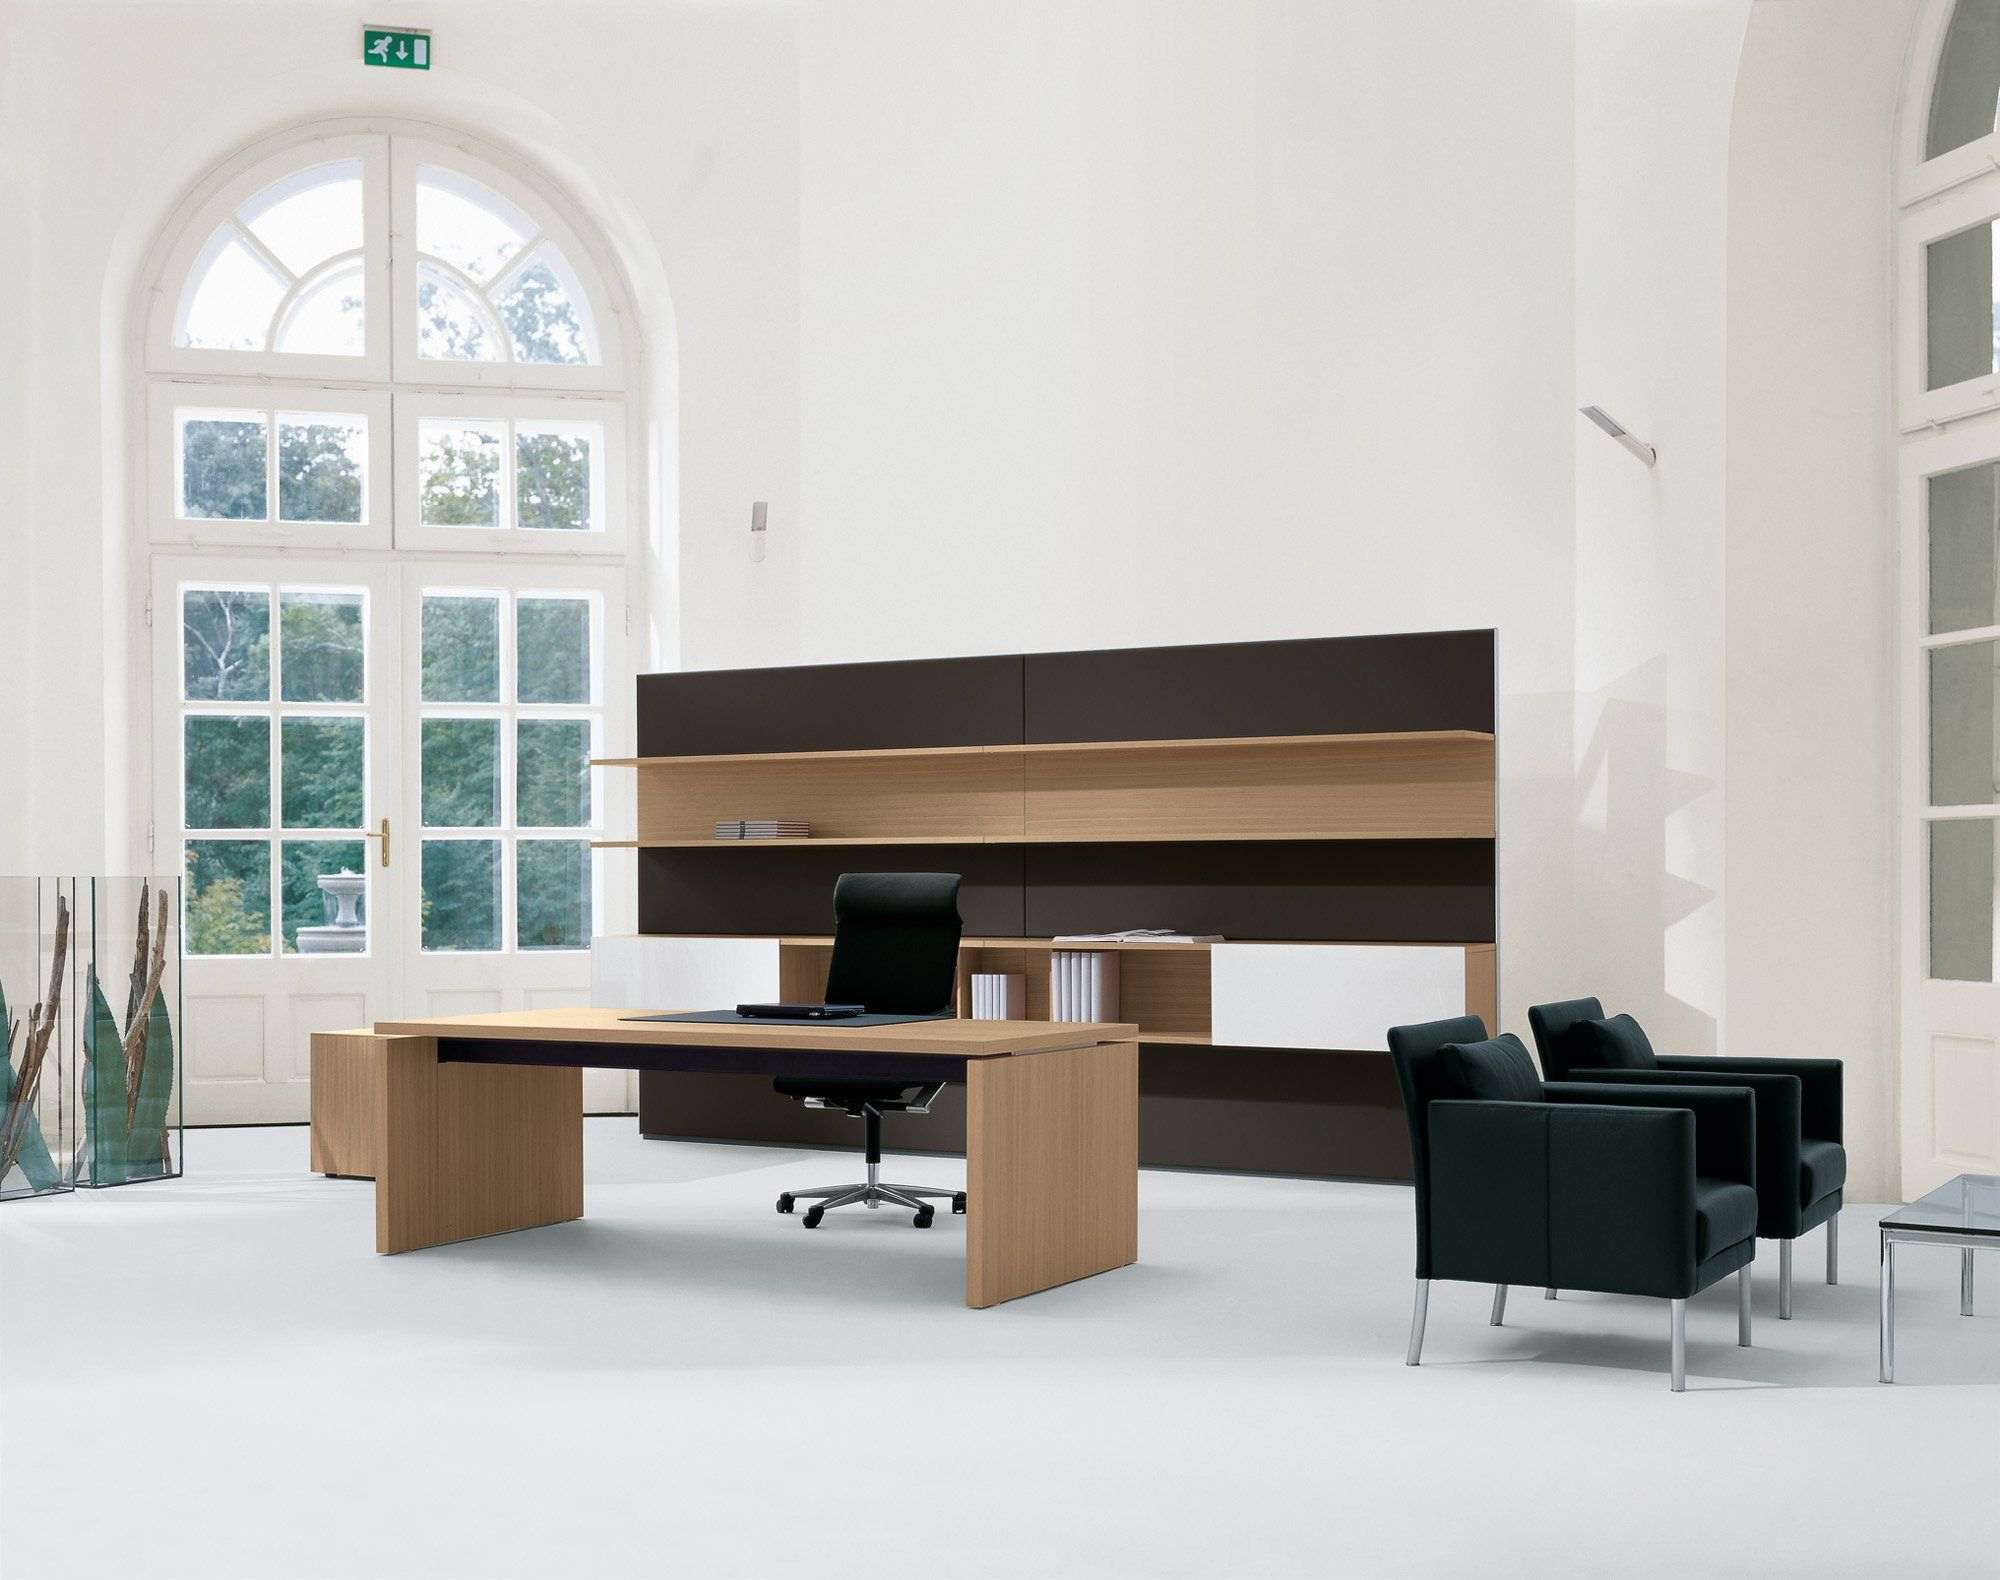 delightful office furniture south. Wonderful Furniture Delightful Office Furniture South Images About Workspace Pinterest  Home Modern Chairs And White In Delightful Office Furniture South G